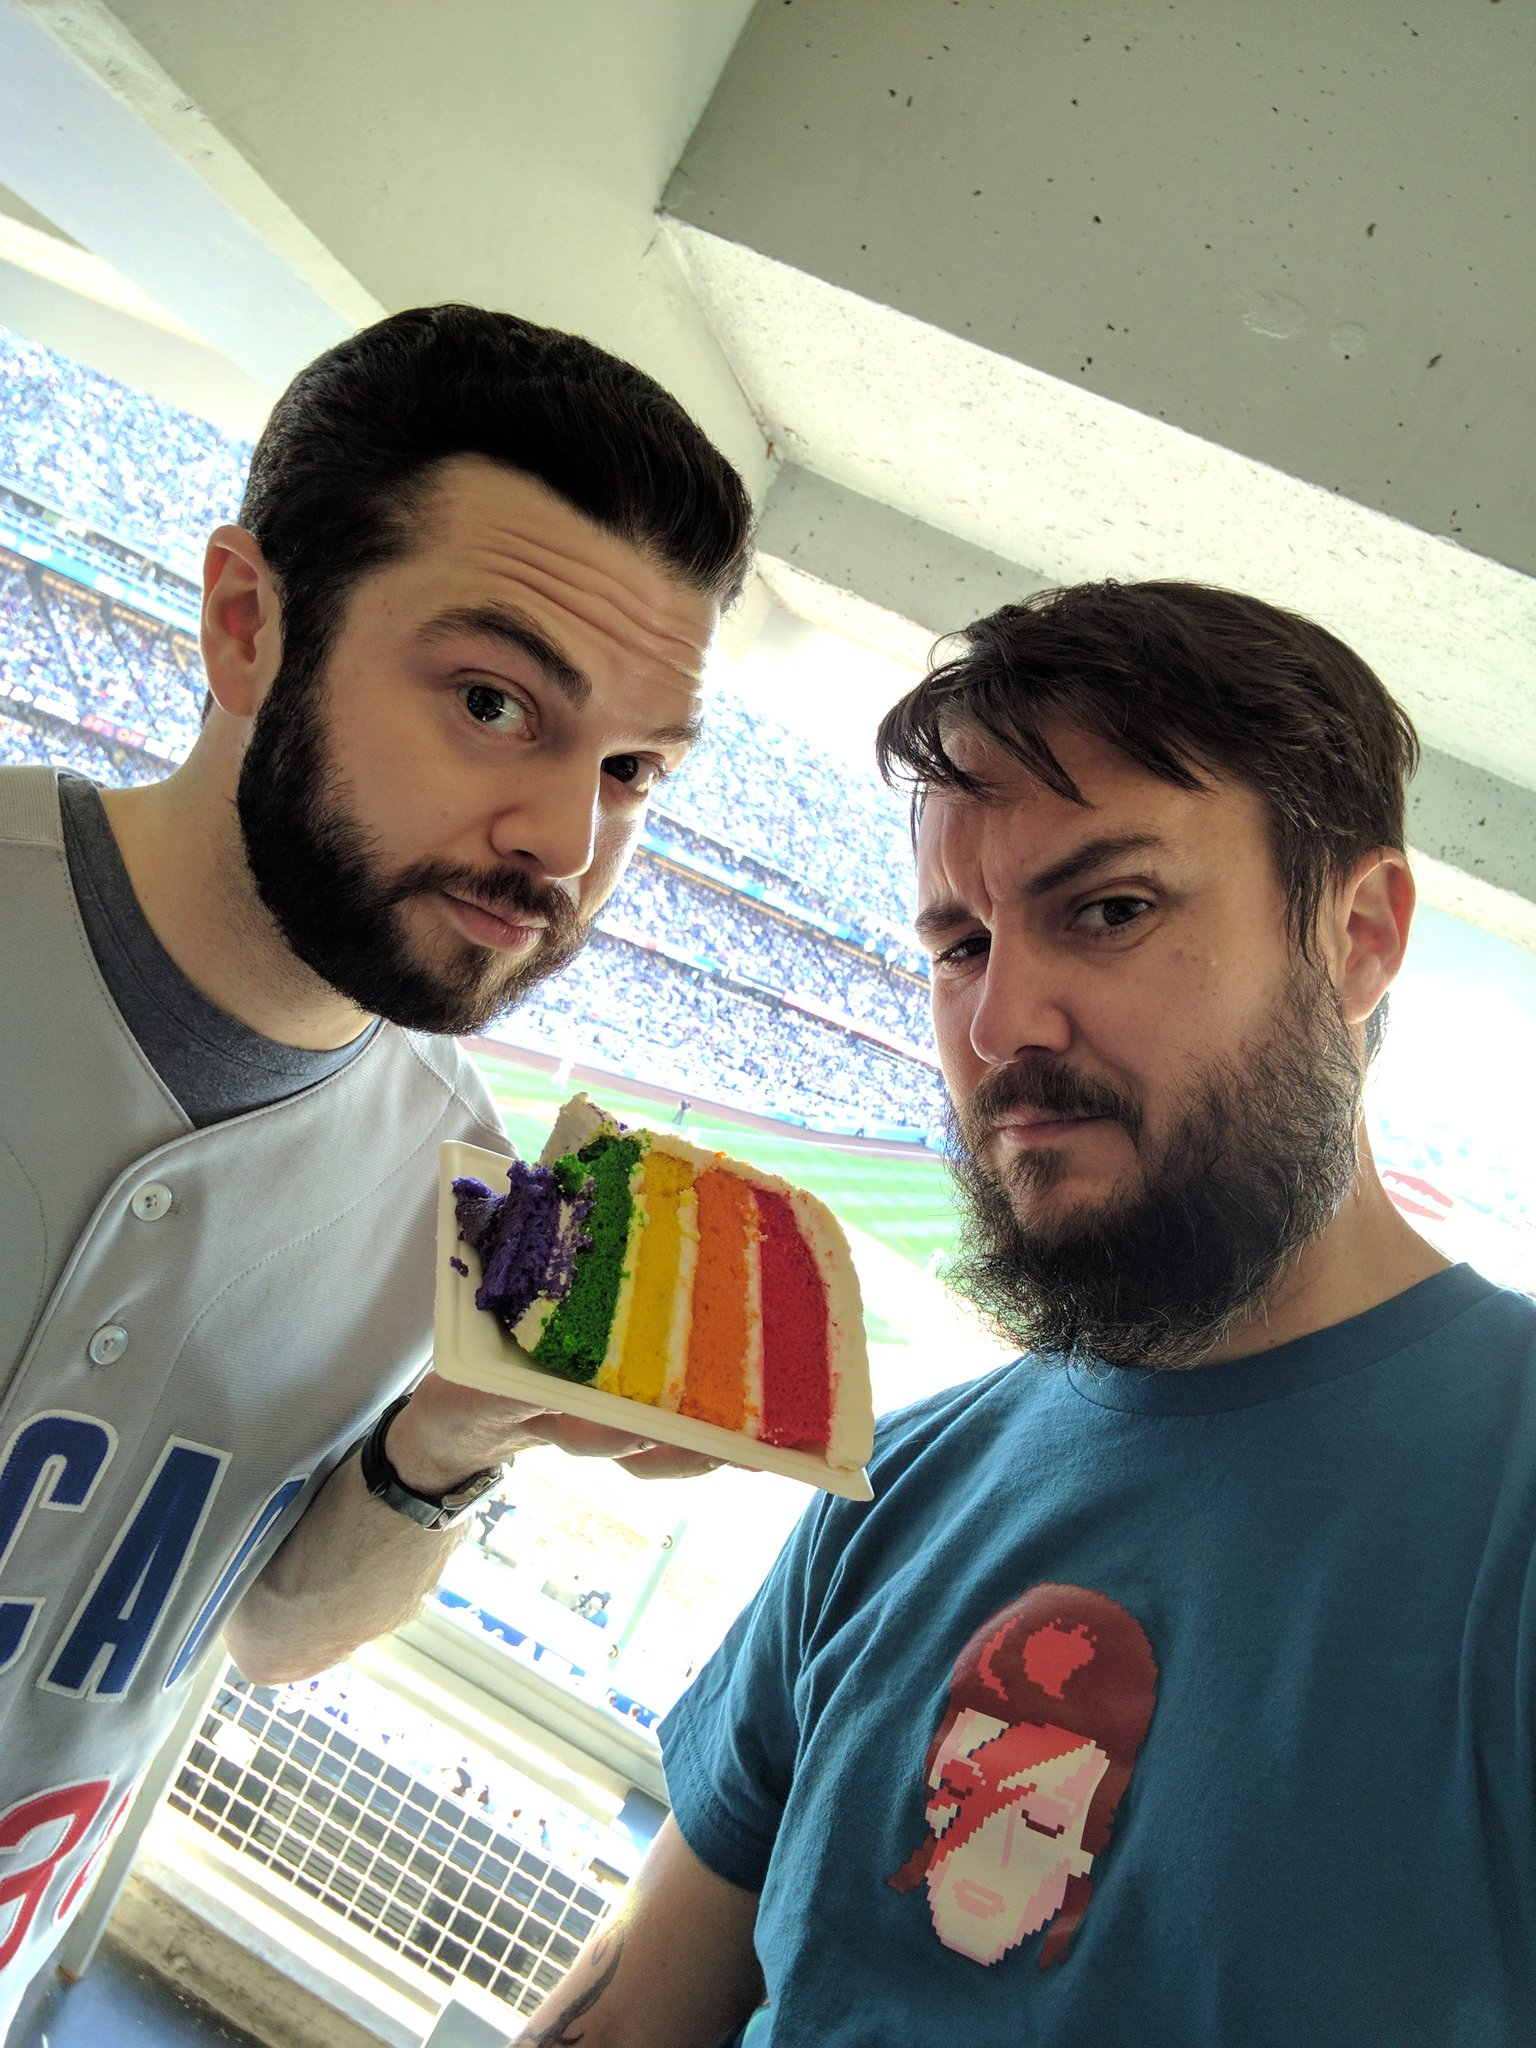 In which I celebrate this pride cake with @Cubs fan @SammLevine. (But seriously go @Dodgers) https://t.co/KqiJBNVYa7